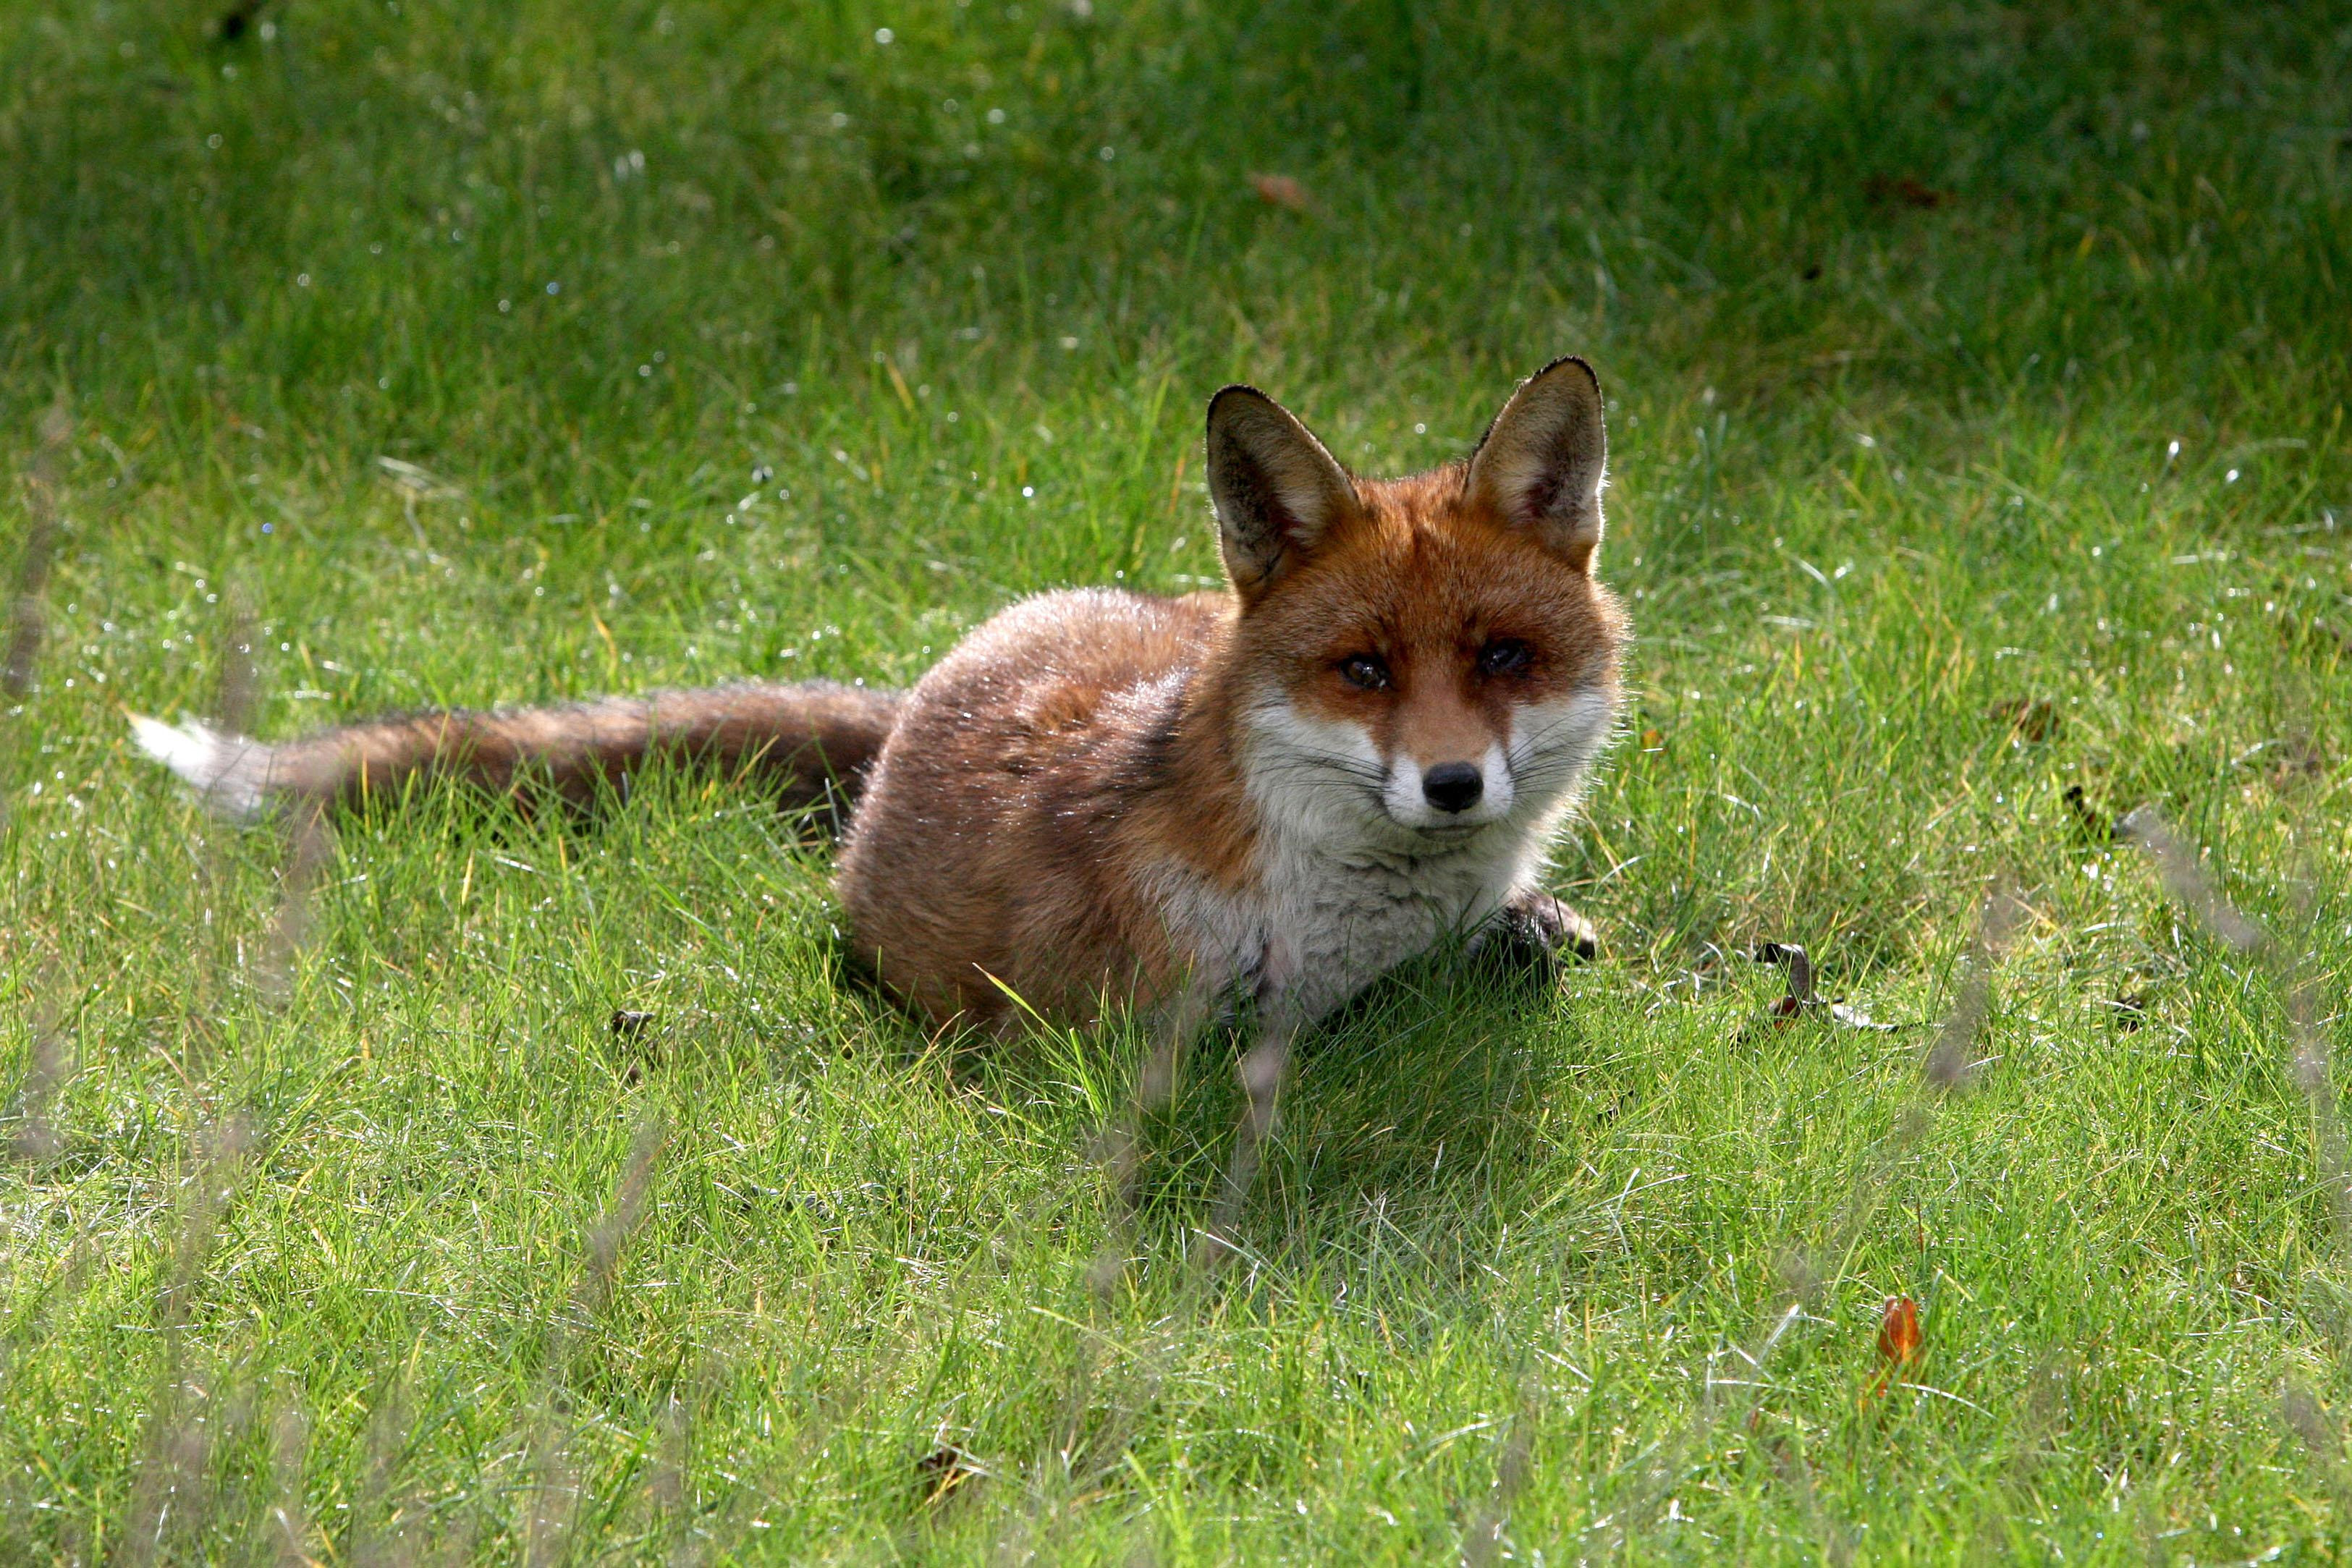 A fox (not this one) got into the hen house through an automatic door, which closed behind it. Credit: PA